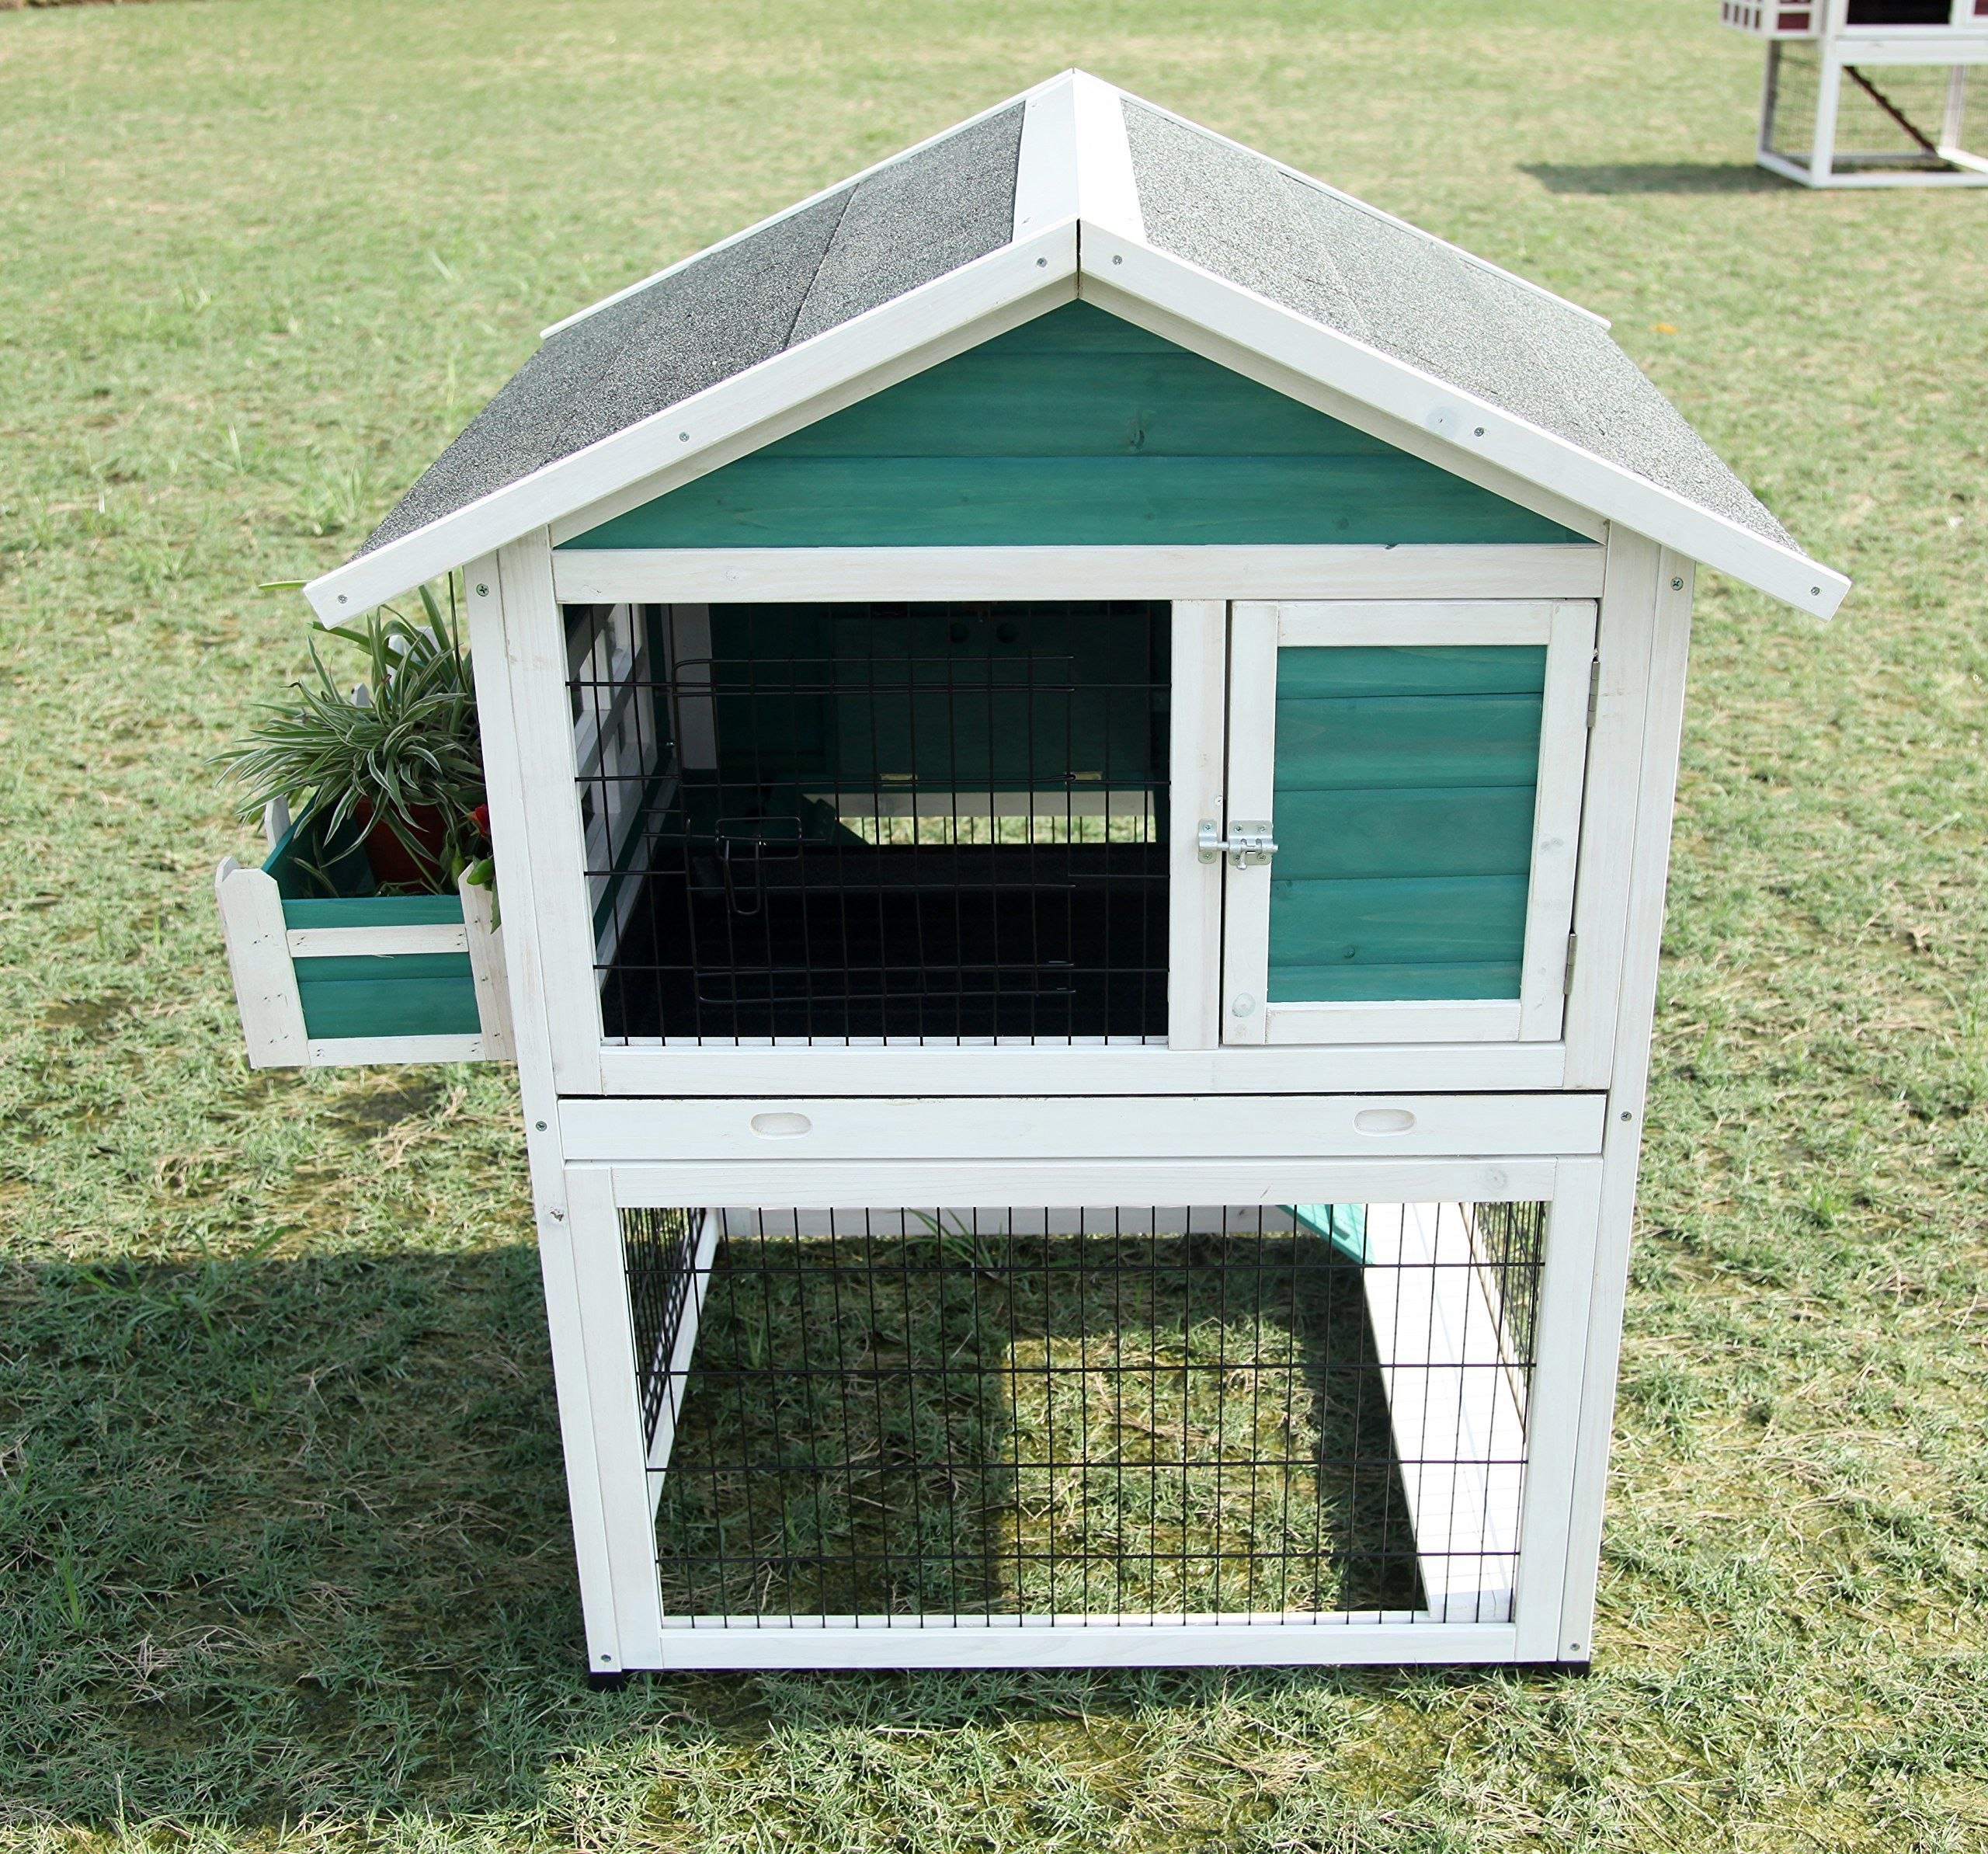 Diy rabbit hutch wera deep sockets